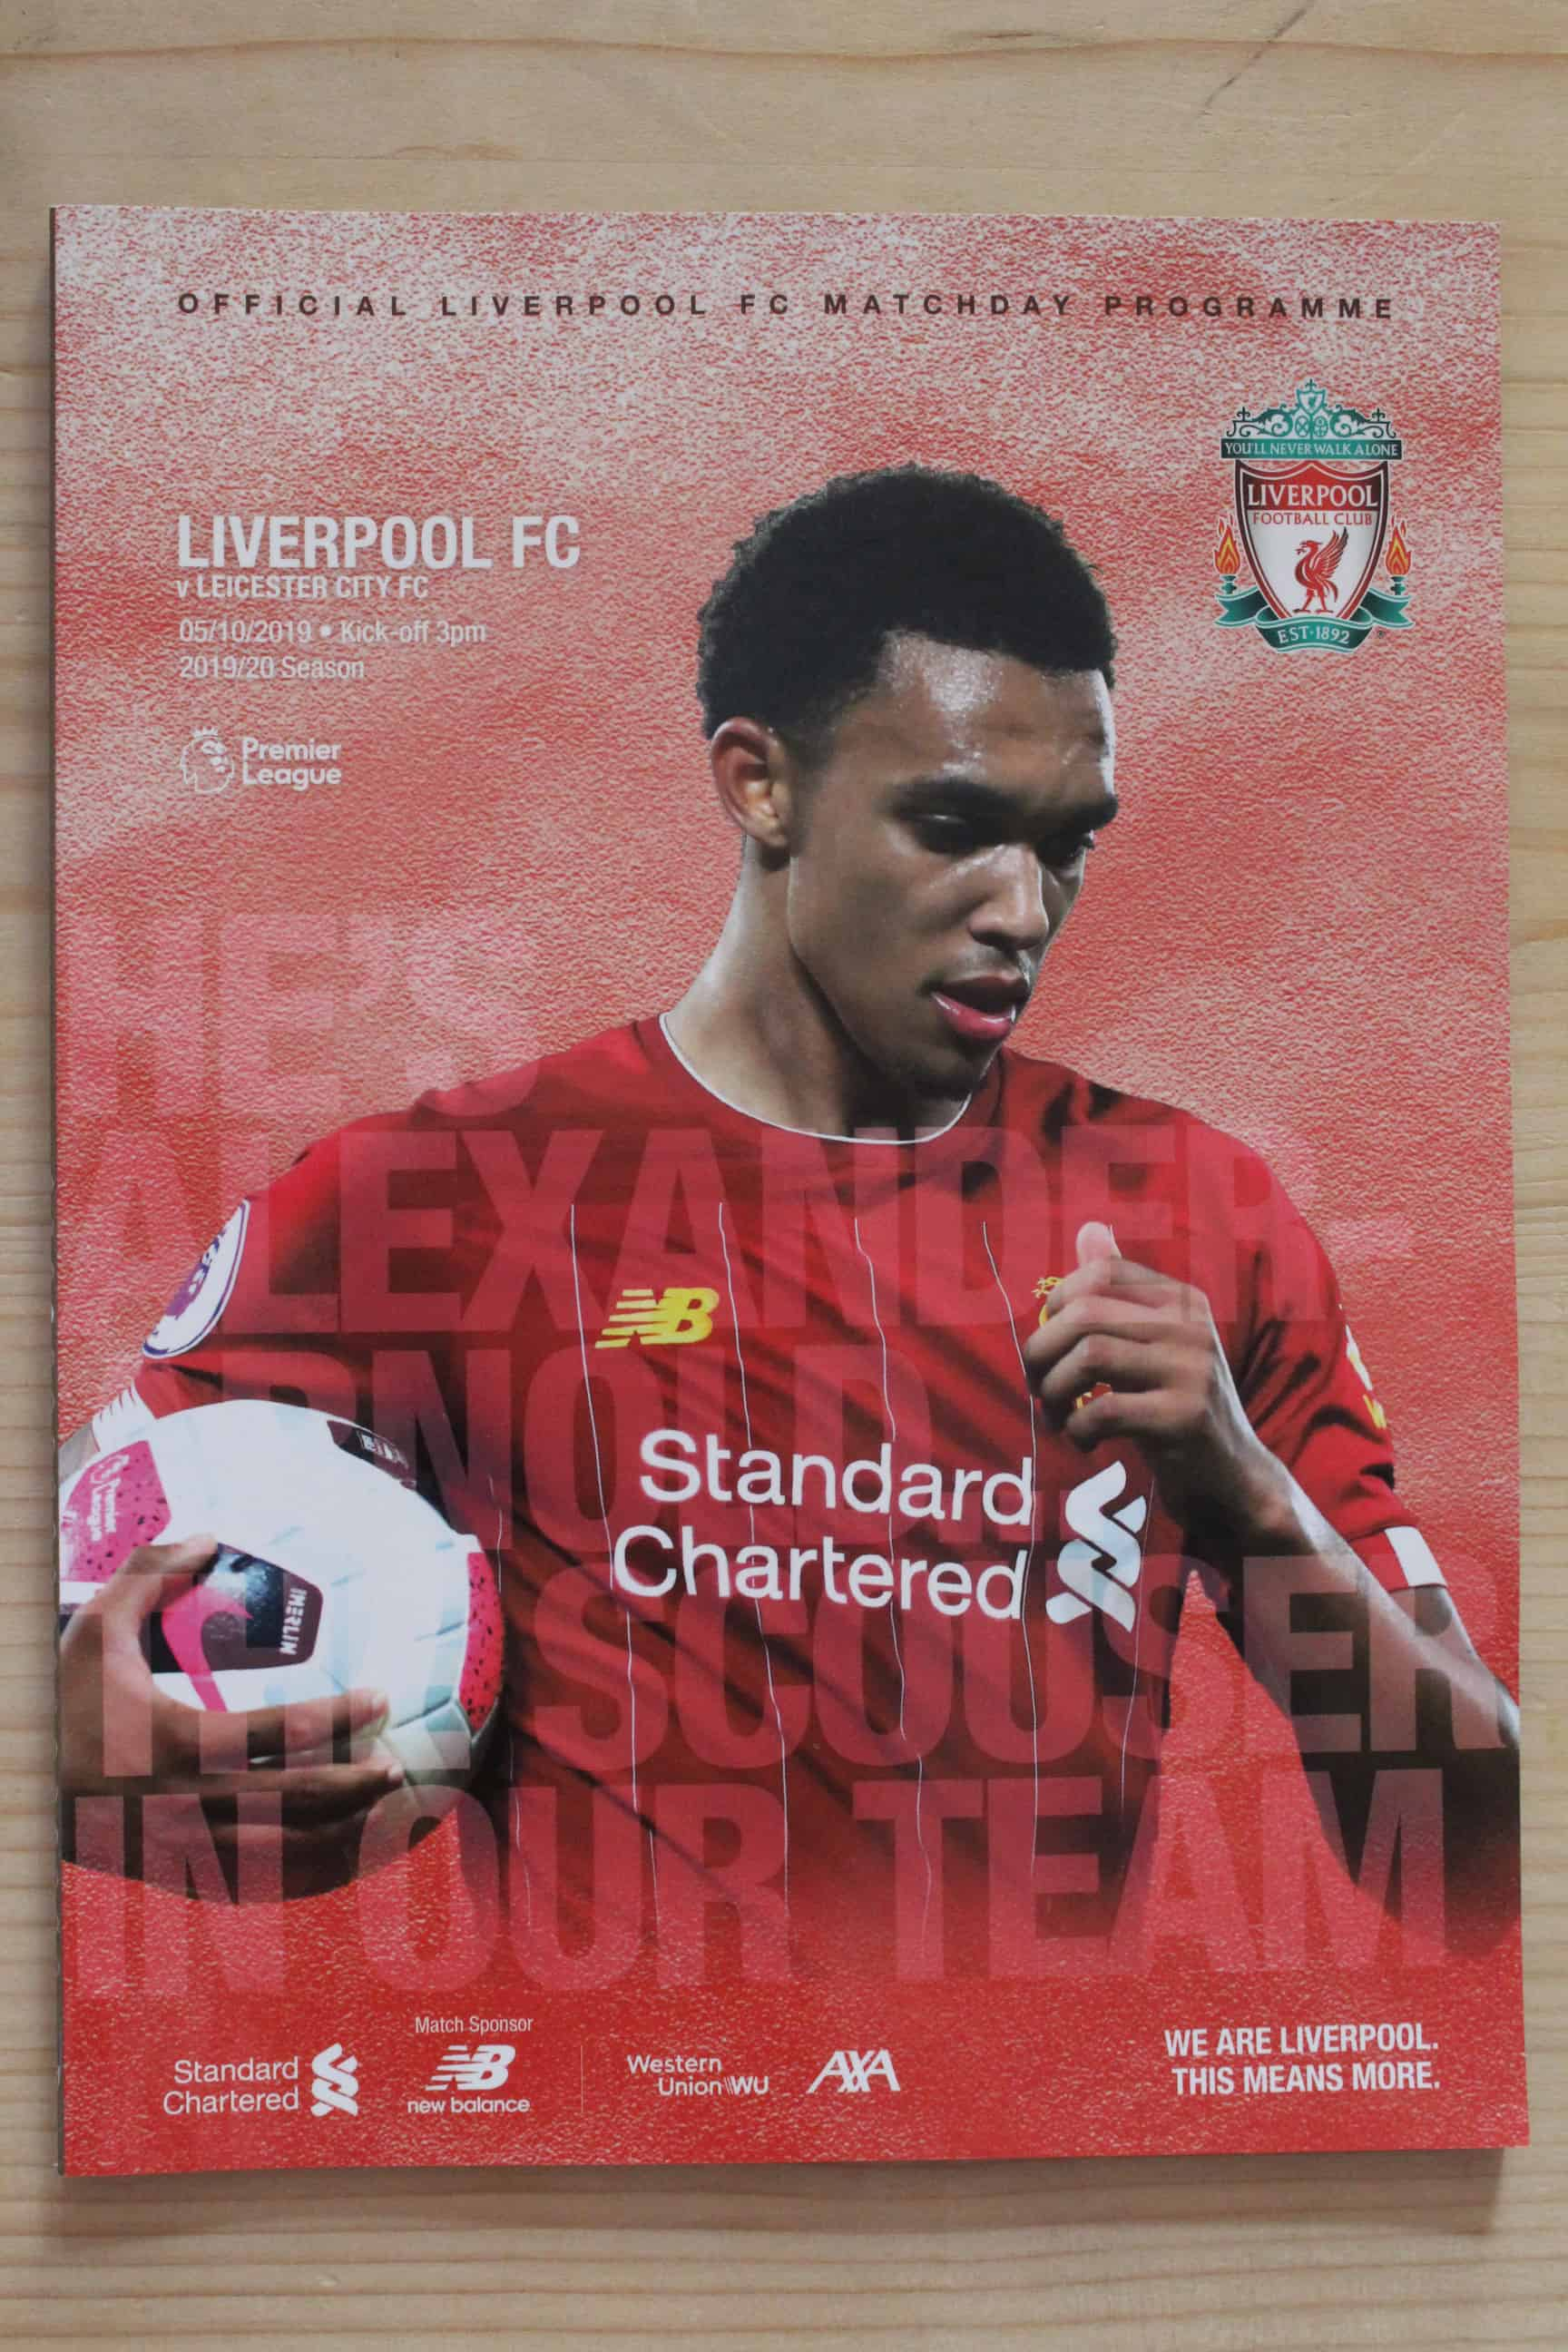 Liverpool FC v Leicester City FC